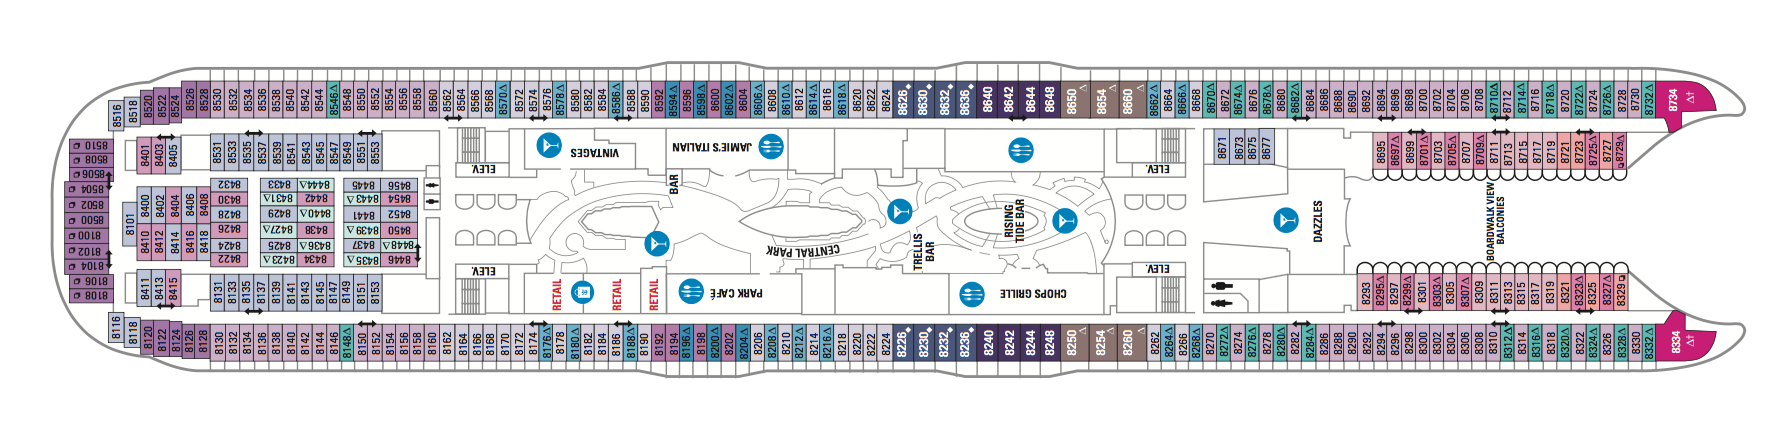 Royal Caribbean International Symphony of the Seas Deck Plans Deck 8.png